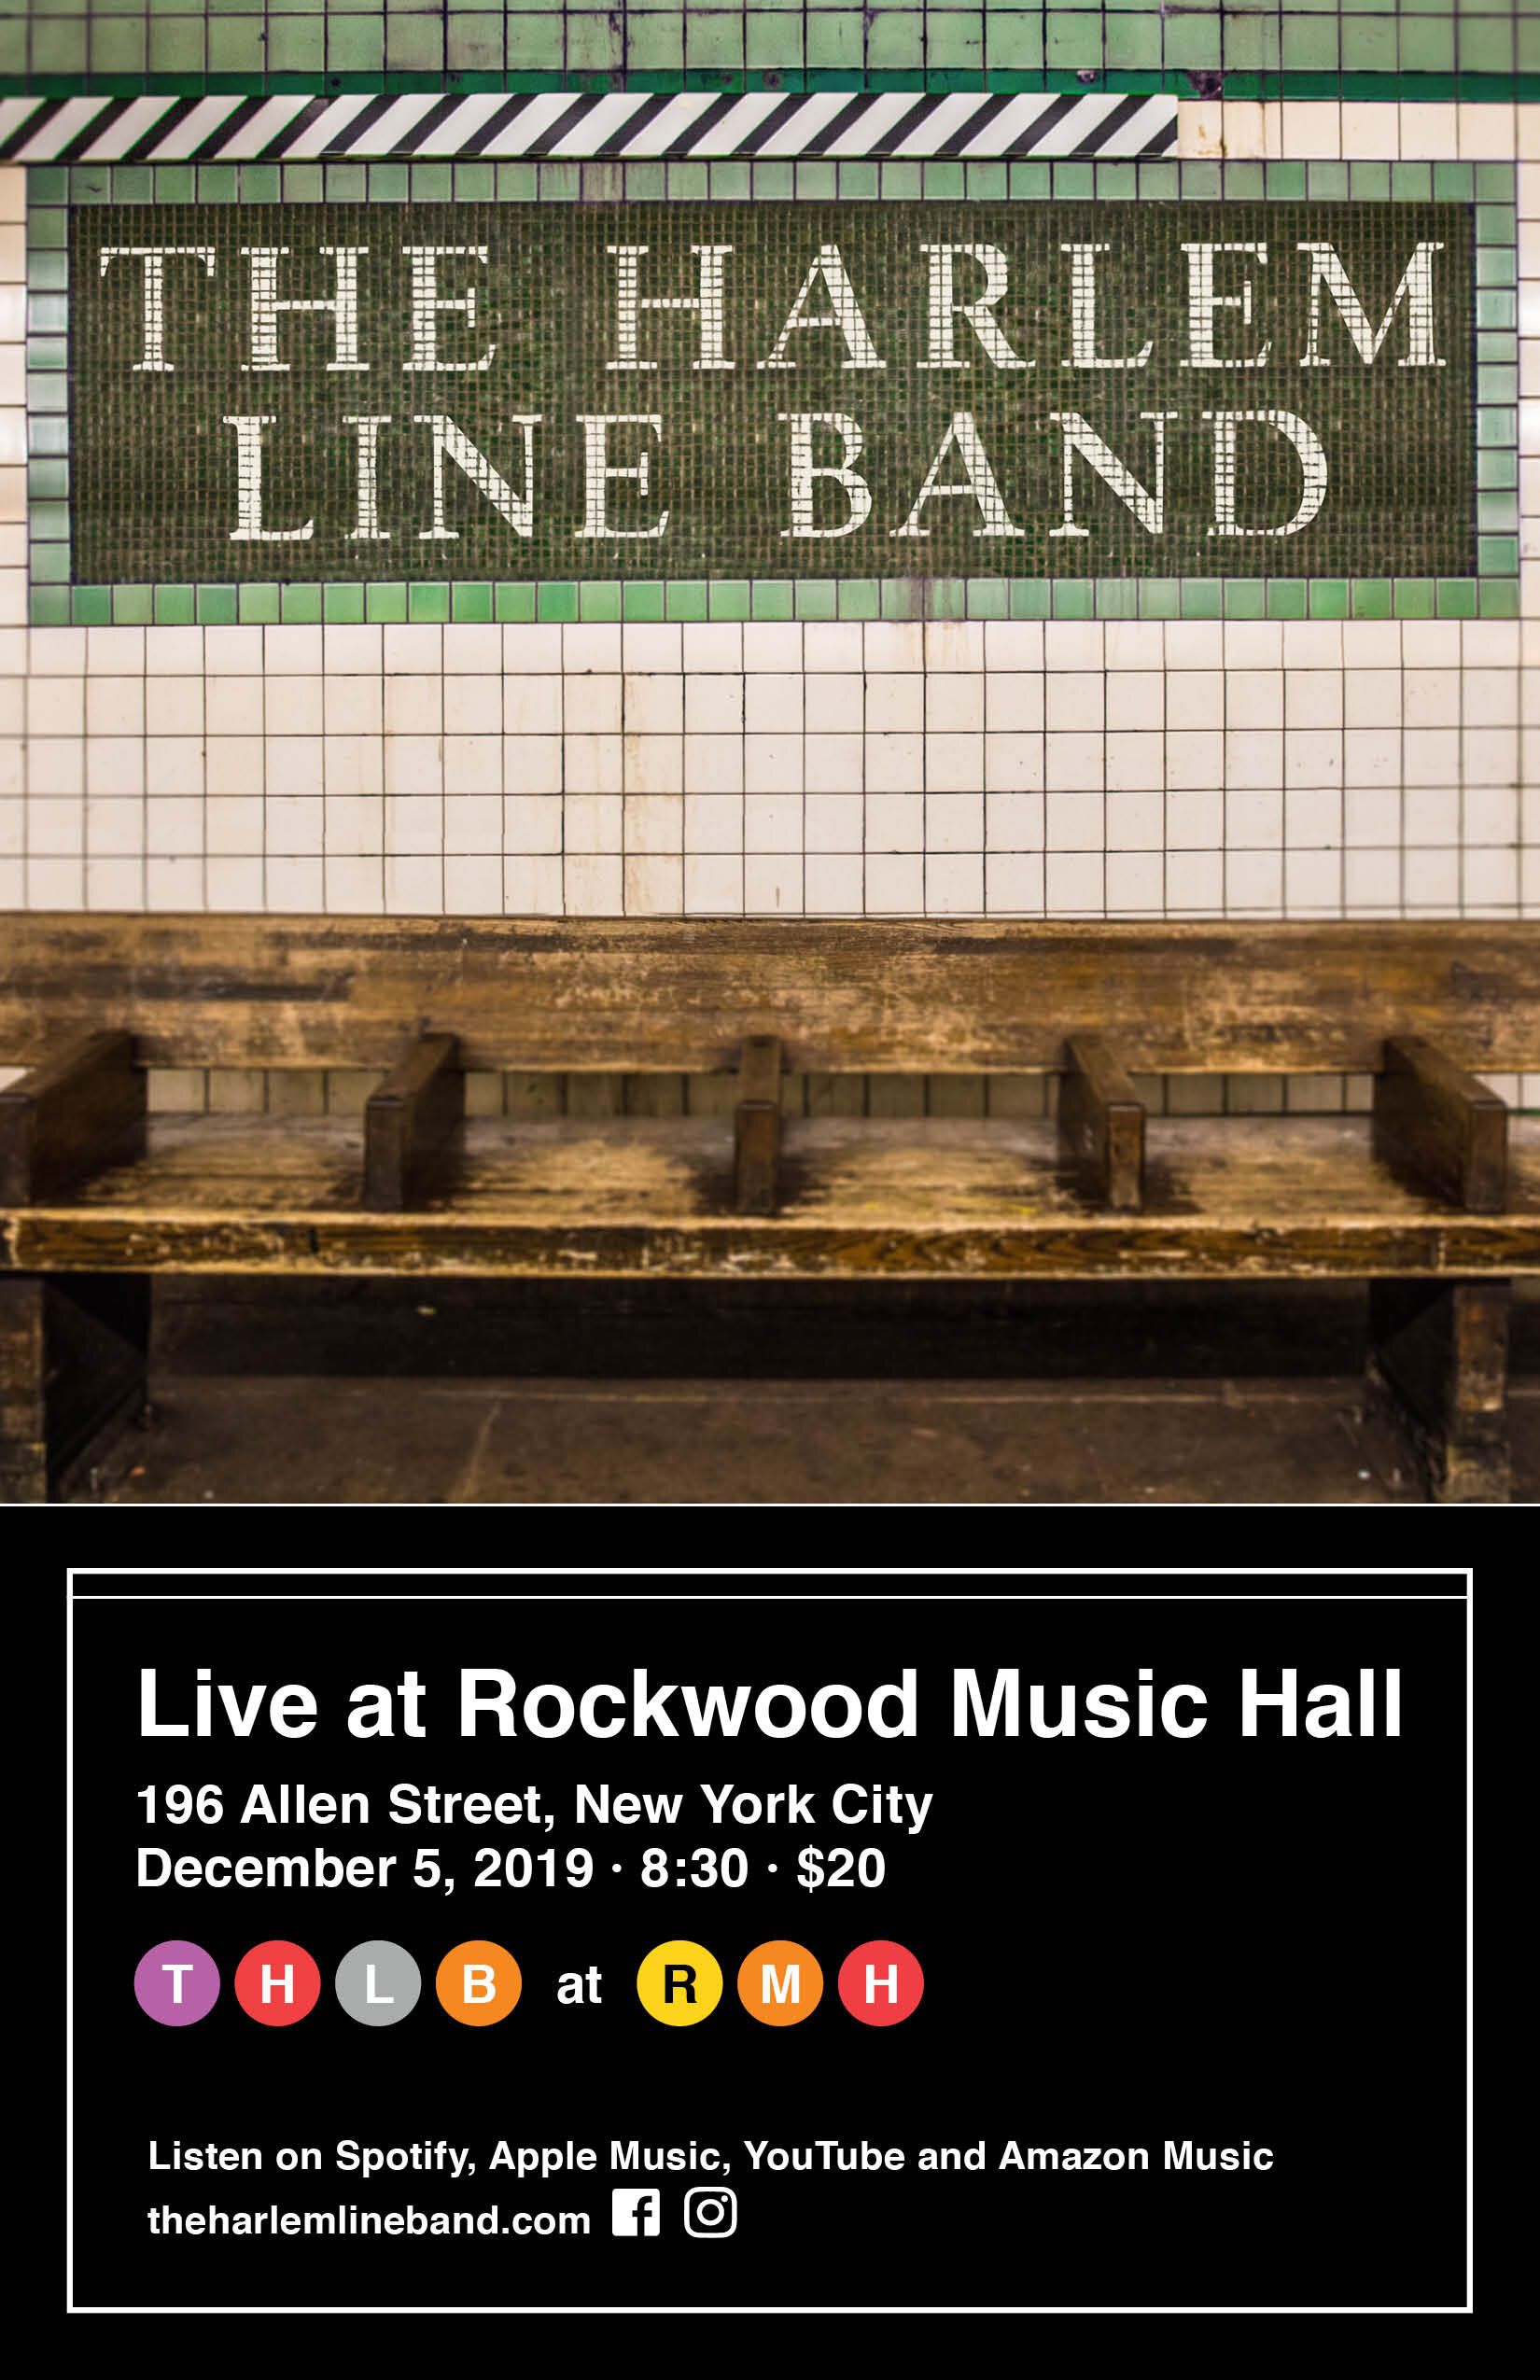 HLB_Rockwood-Music-Hall_10-19.jpg